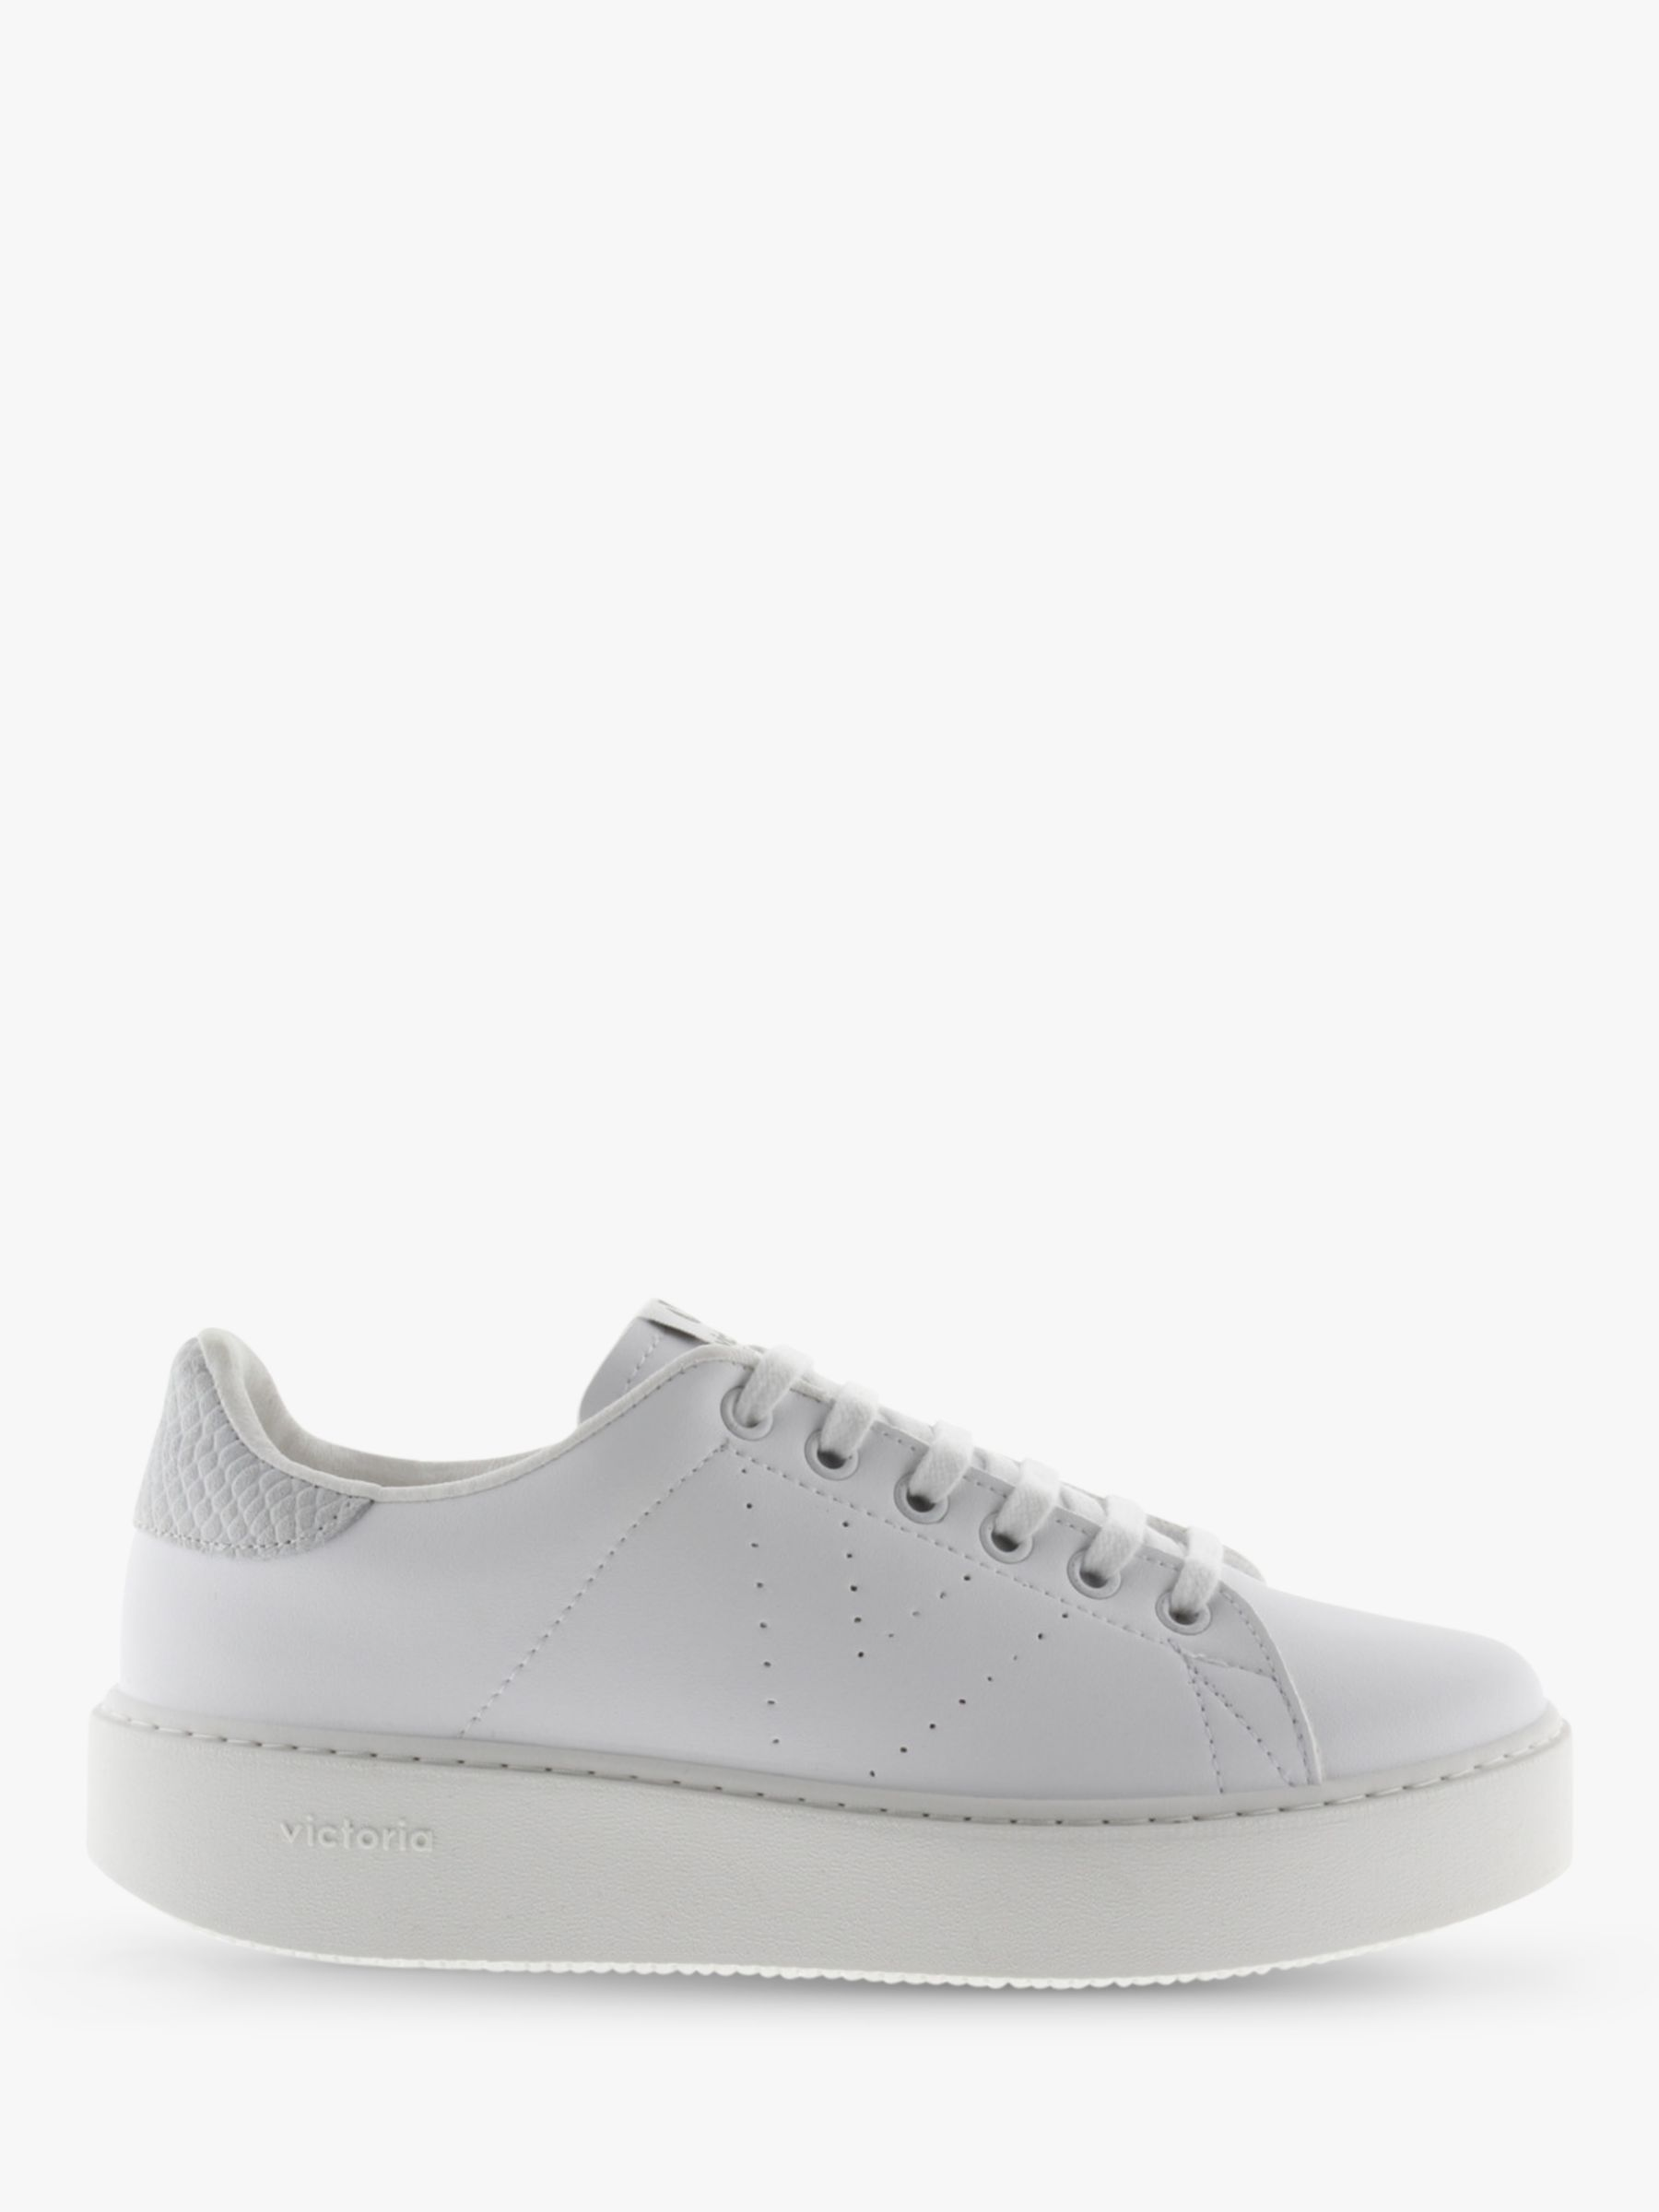 Victoria Shoes Victoria Shoes Utopia Flatform Lace Up Trainers, White